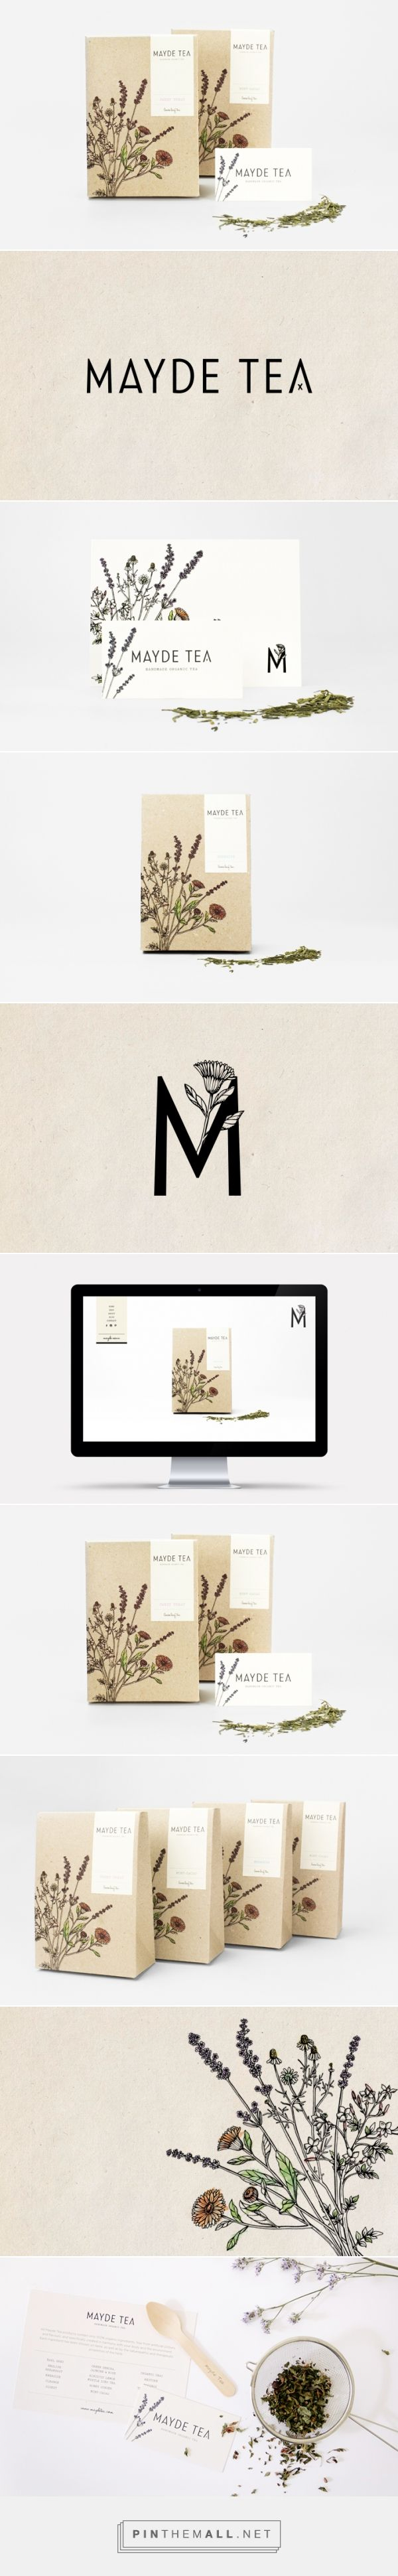 Mayde Tea Branding and Packaging by Smack Bang Designs | Fivestar Branding Agency – Design and Branding Agency & Curated Inspiration Gallery